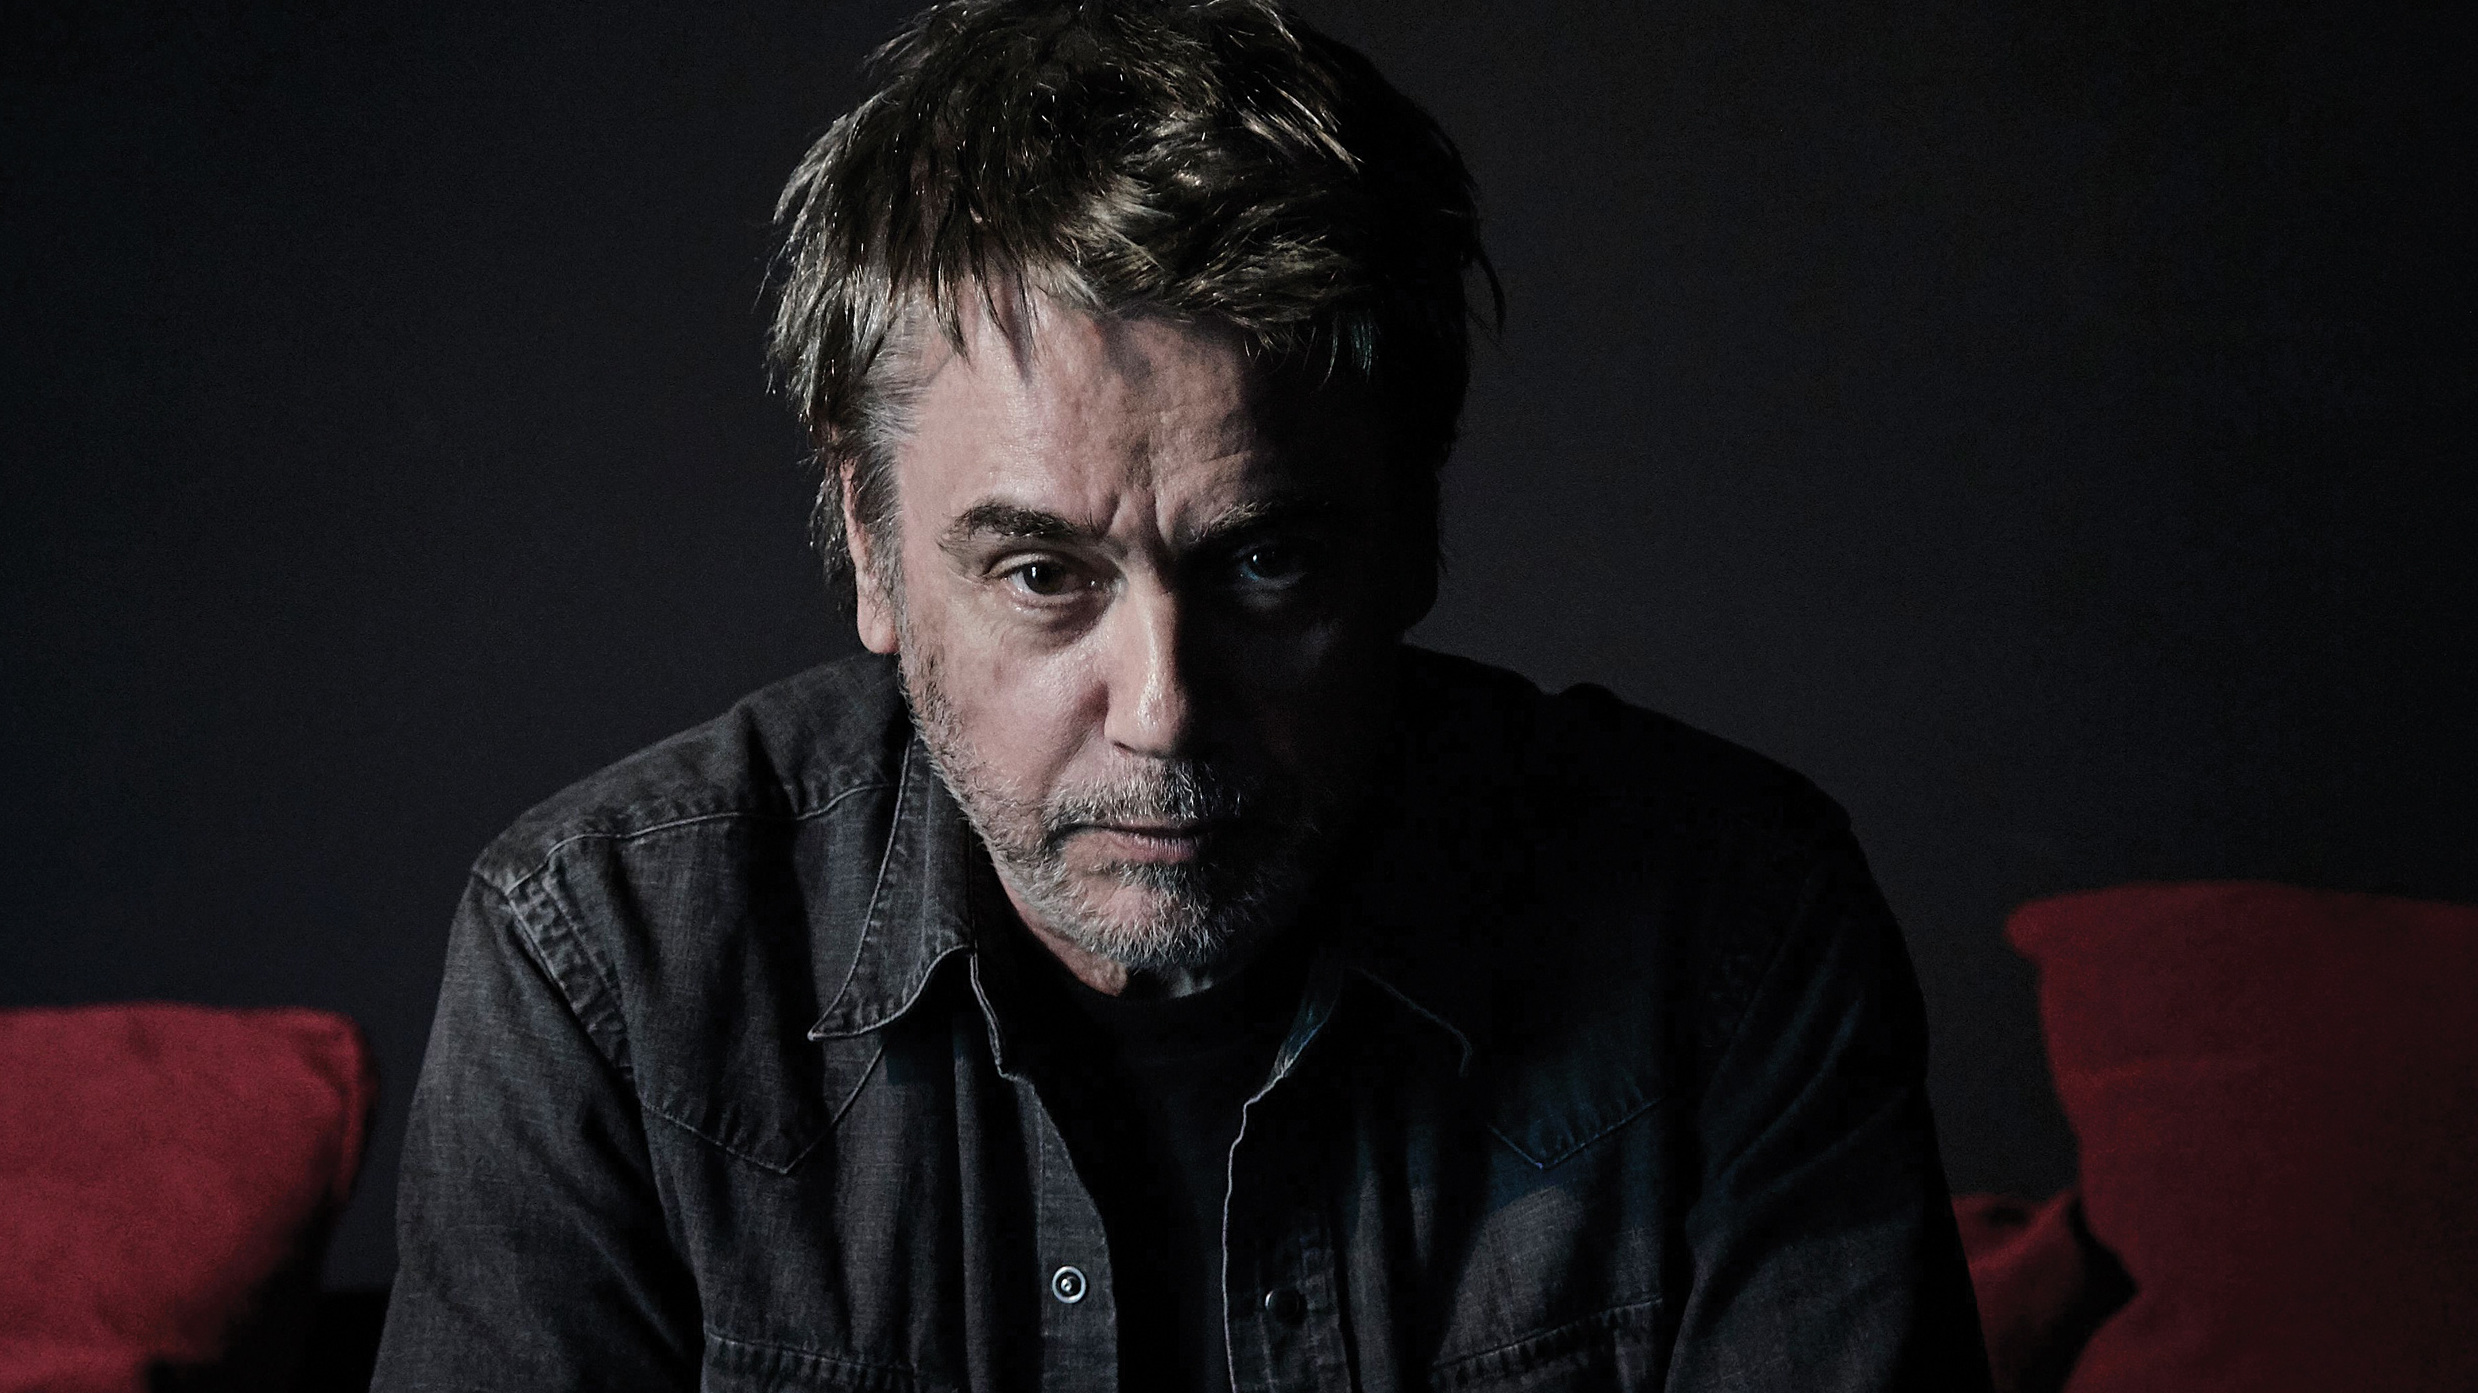 Sofa King Podcast Challenger Jean Michel Jarre An Audience With The Godfather Of Electronic